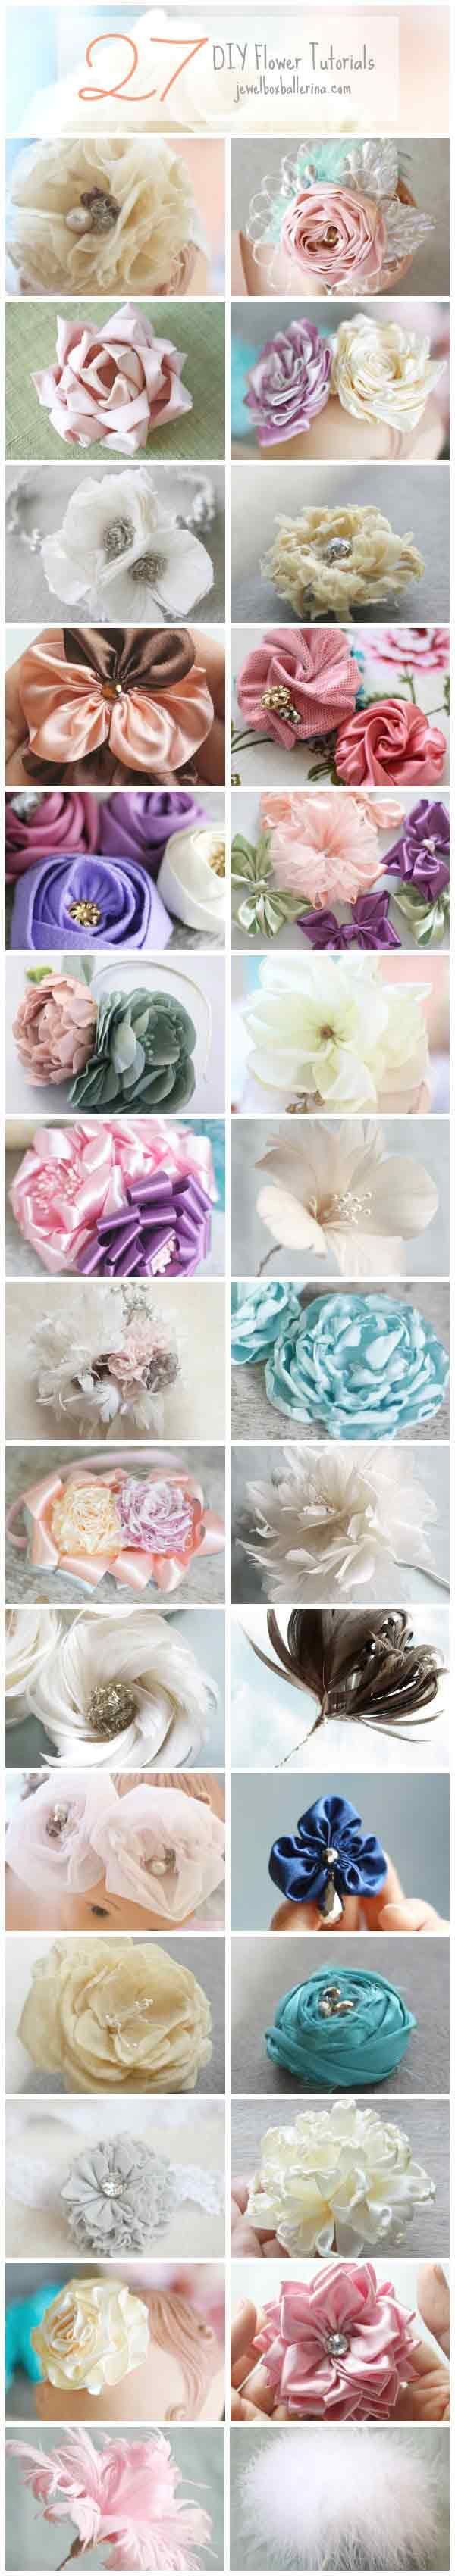 27 DIY Wedding Flower Tutorials and Patterns in Fabric, Paper, and Feather diyweddings wedding fabricflower paperflowers featherflowers diy